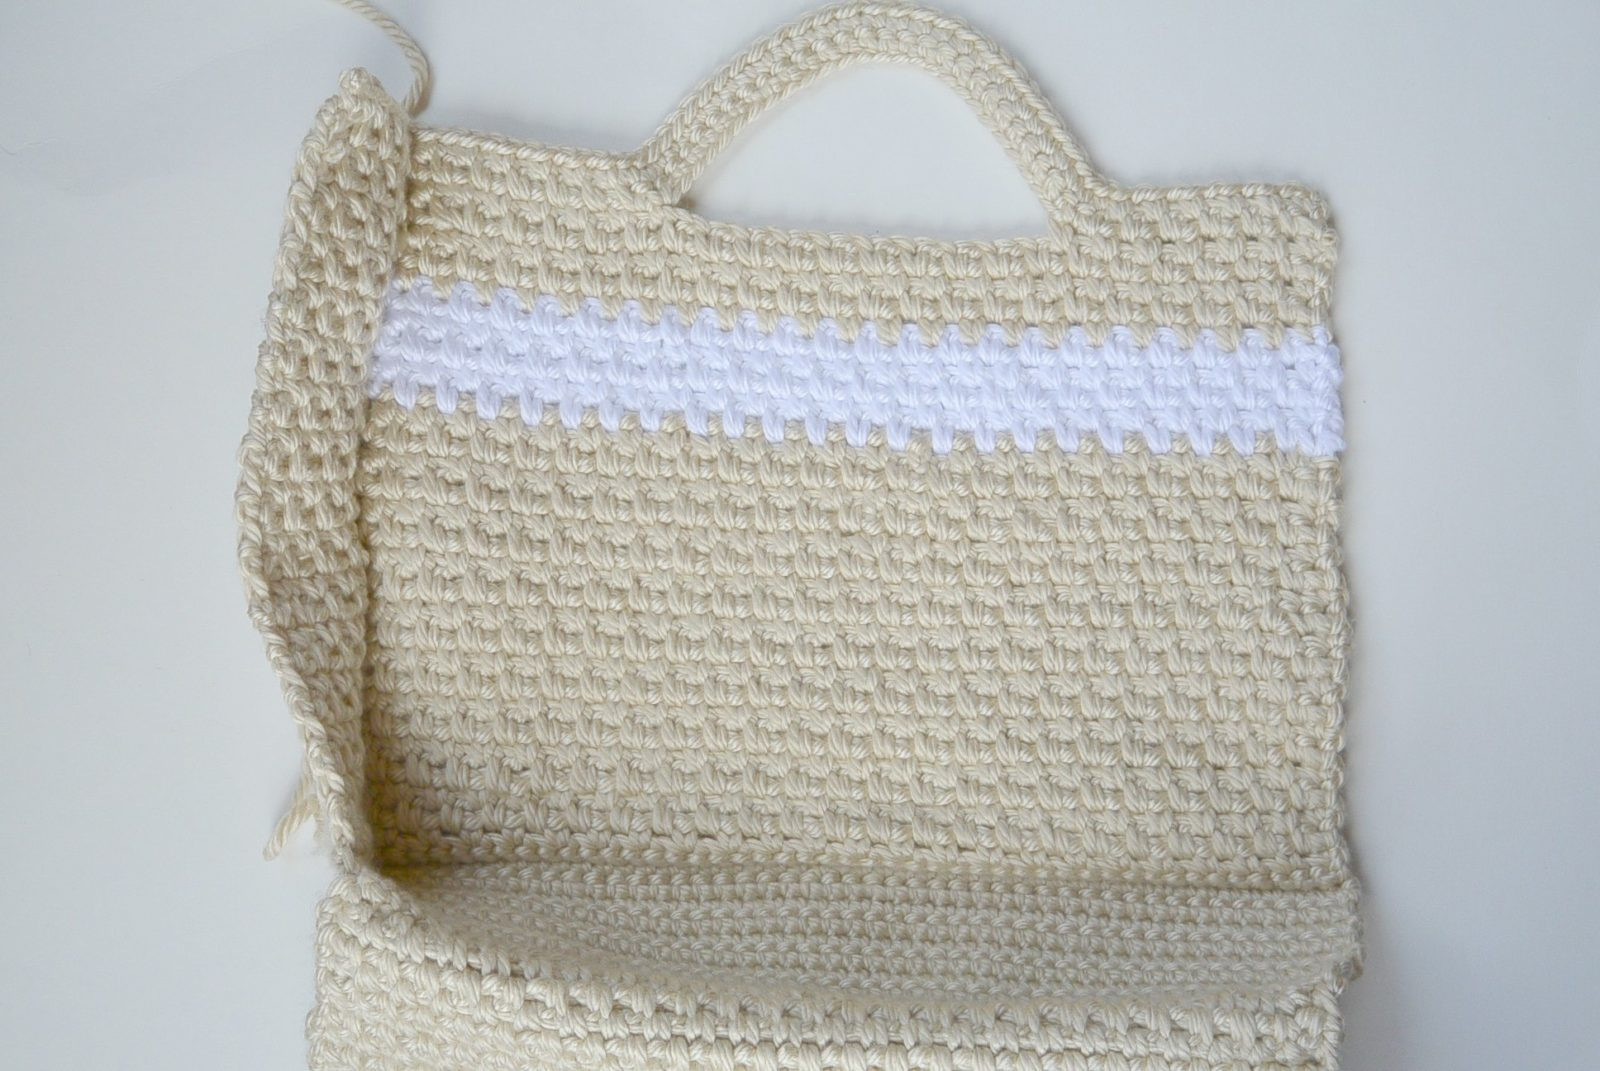 Crochet Purse Awesome Big Easy and Stylish Crochet Bag Pattern – Mama In A Stitch Of Top 48 Images Crochet Purse